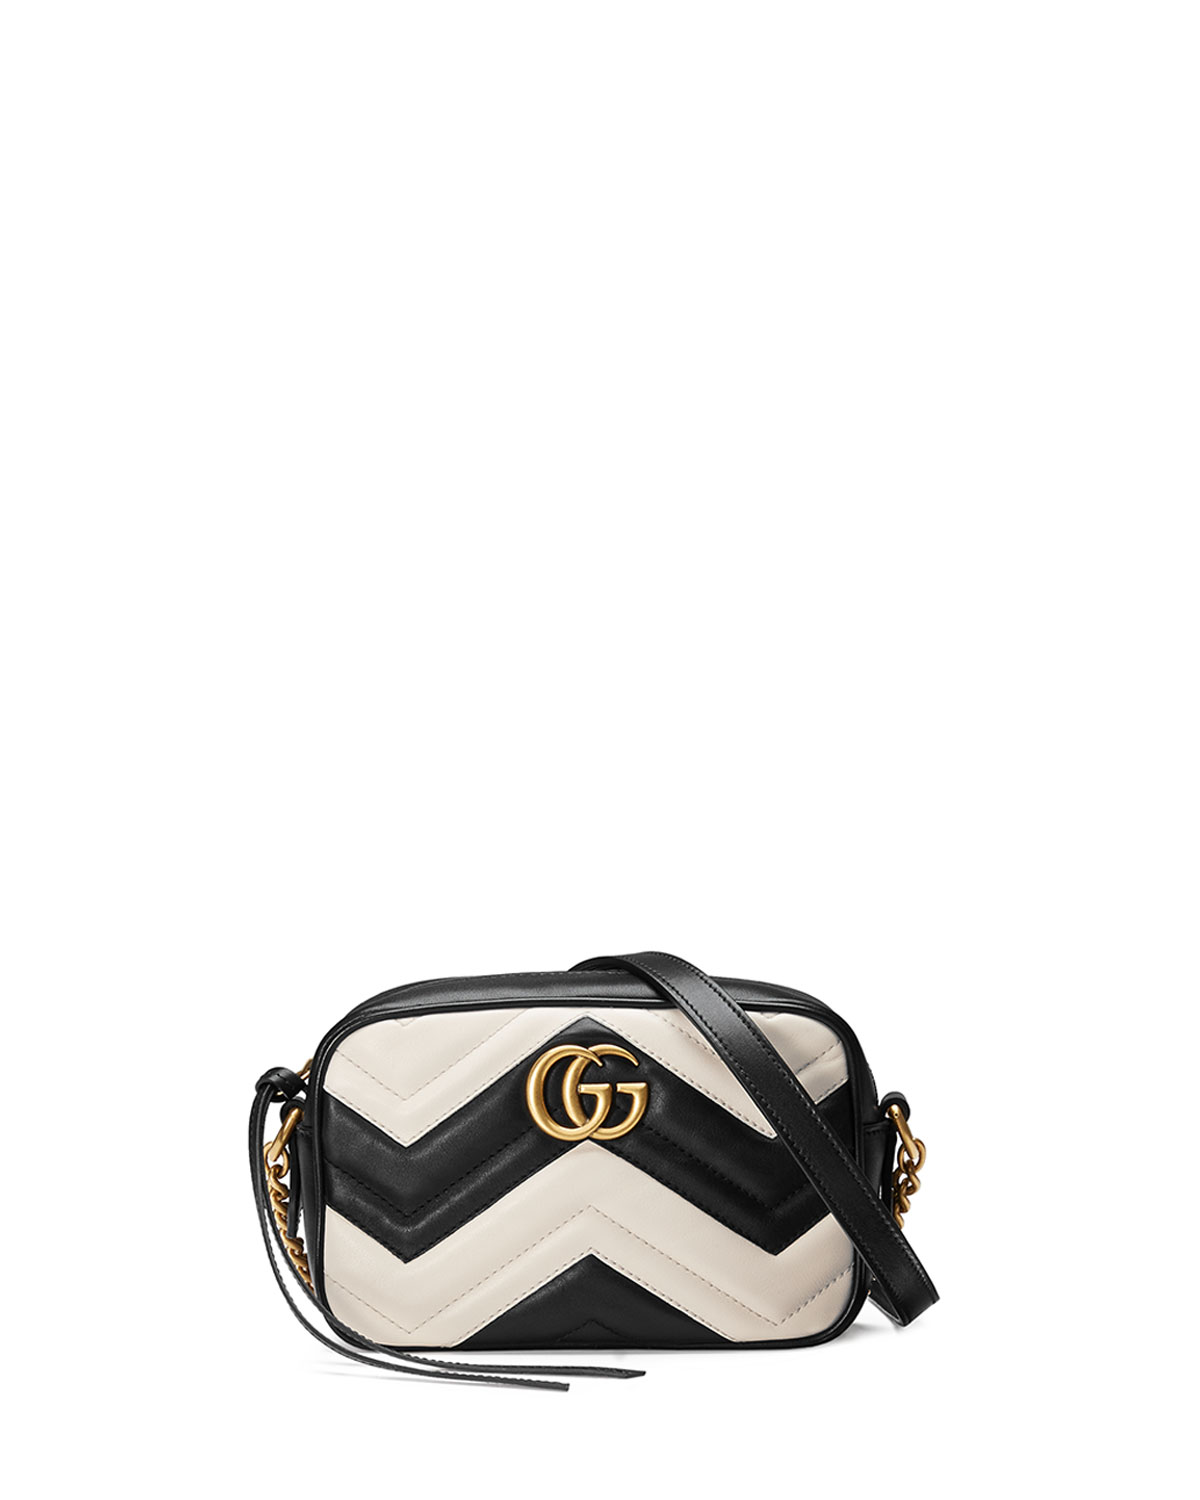 70951f306f051 Gucci GG Marmont Mini Matelassé Camera Bag